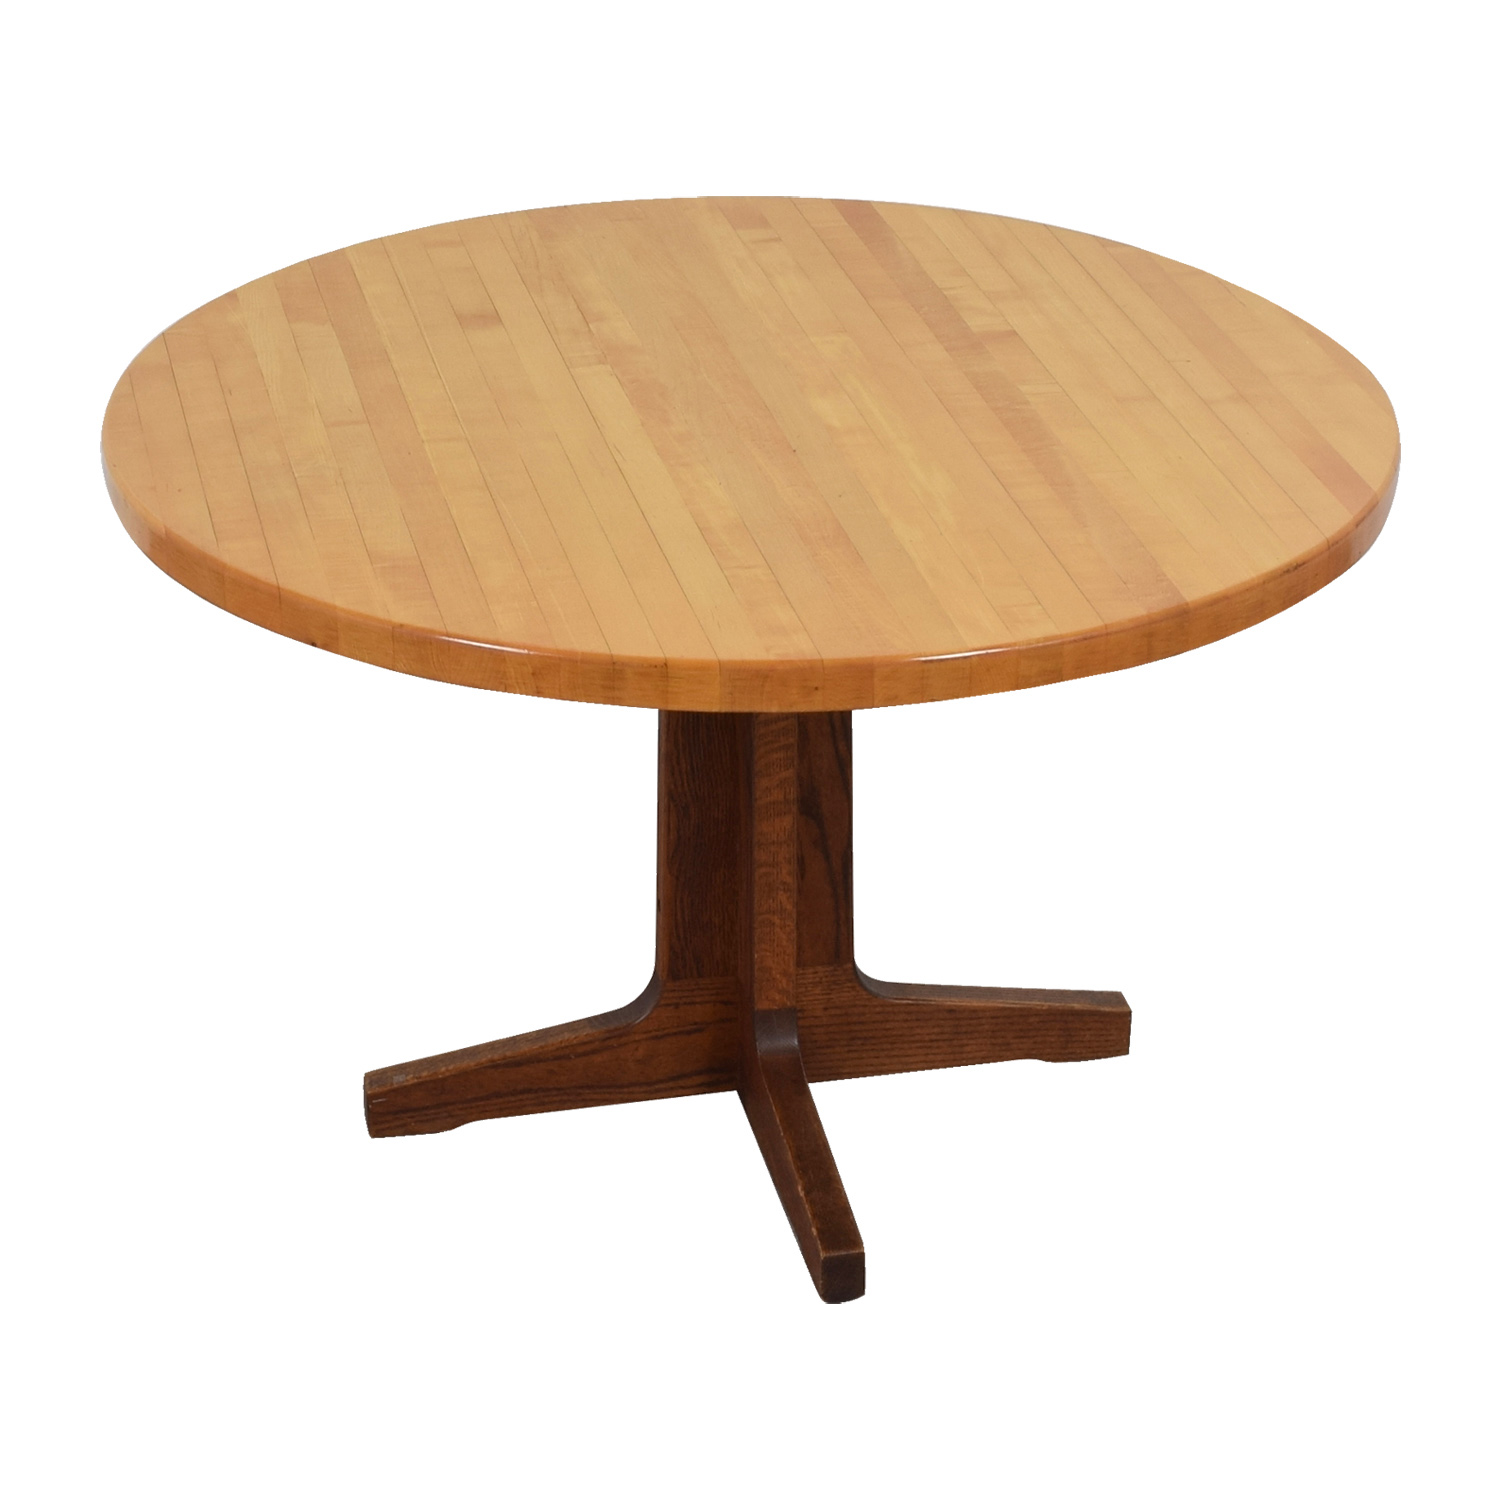 OFF Jonathan Adler Jonathan Adler Oval Wood Table Tables